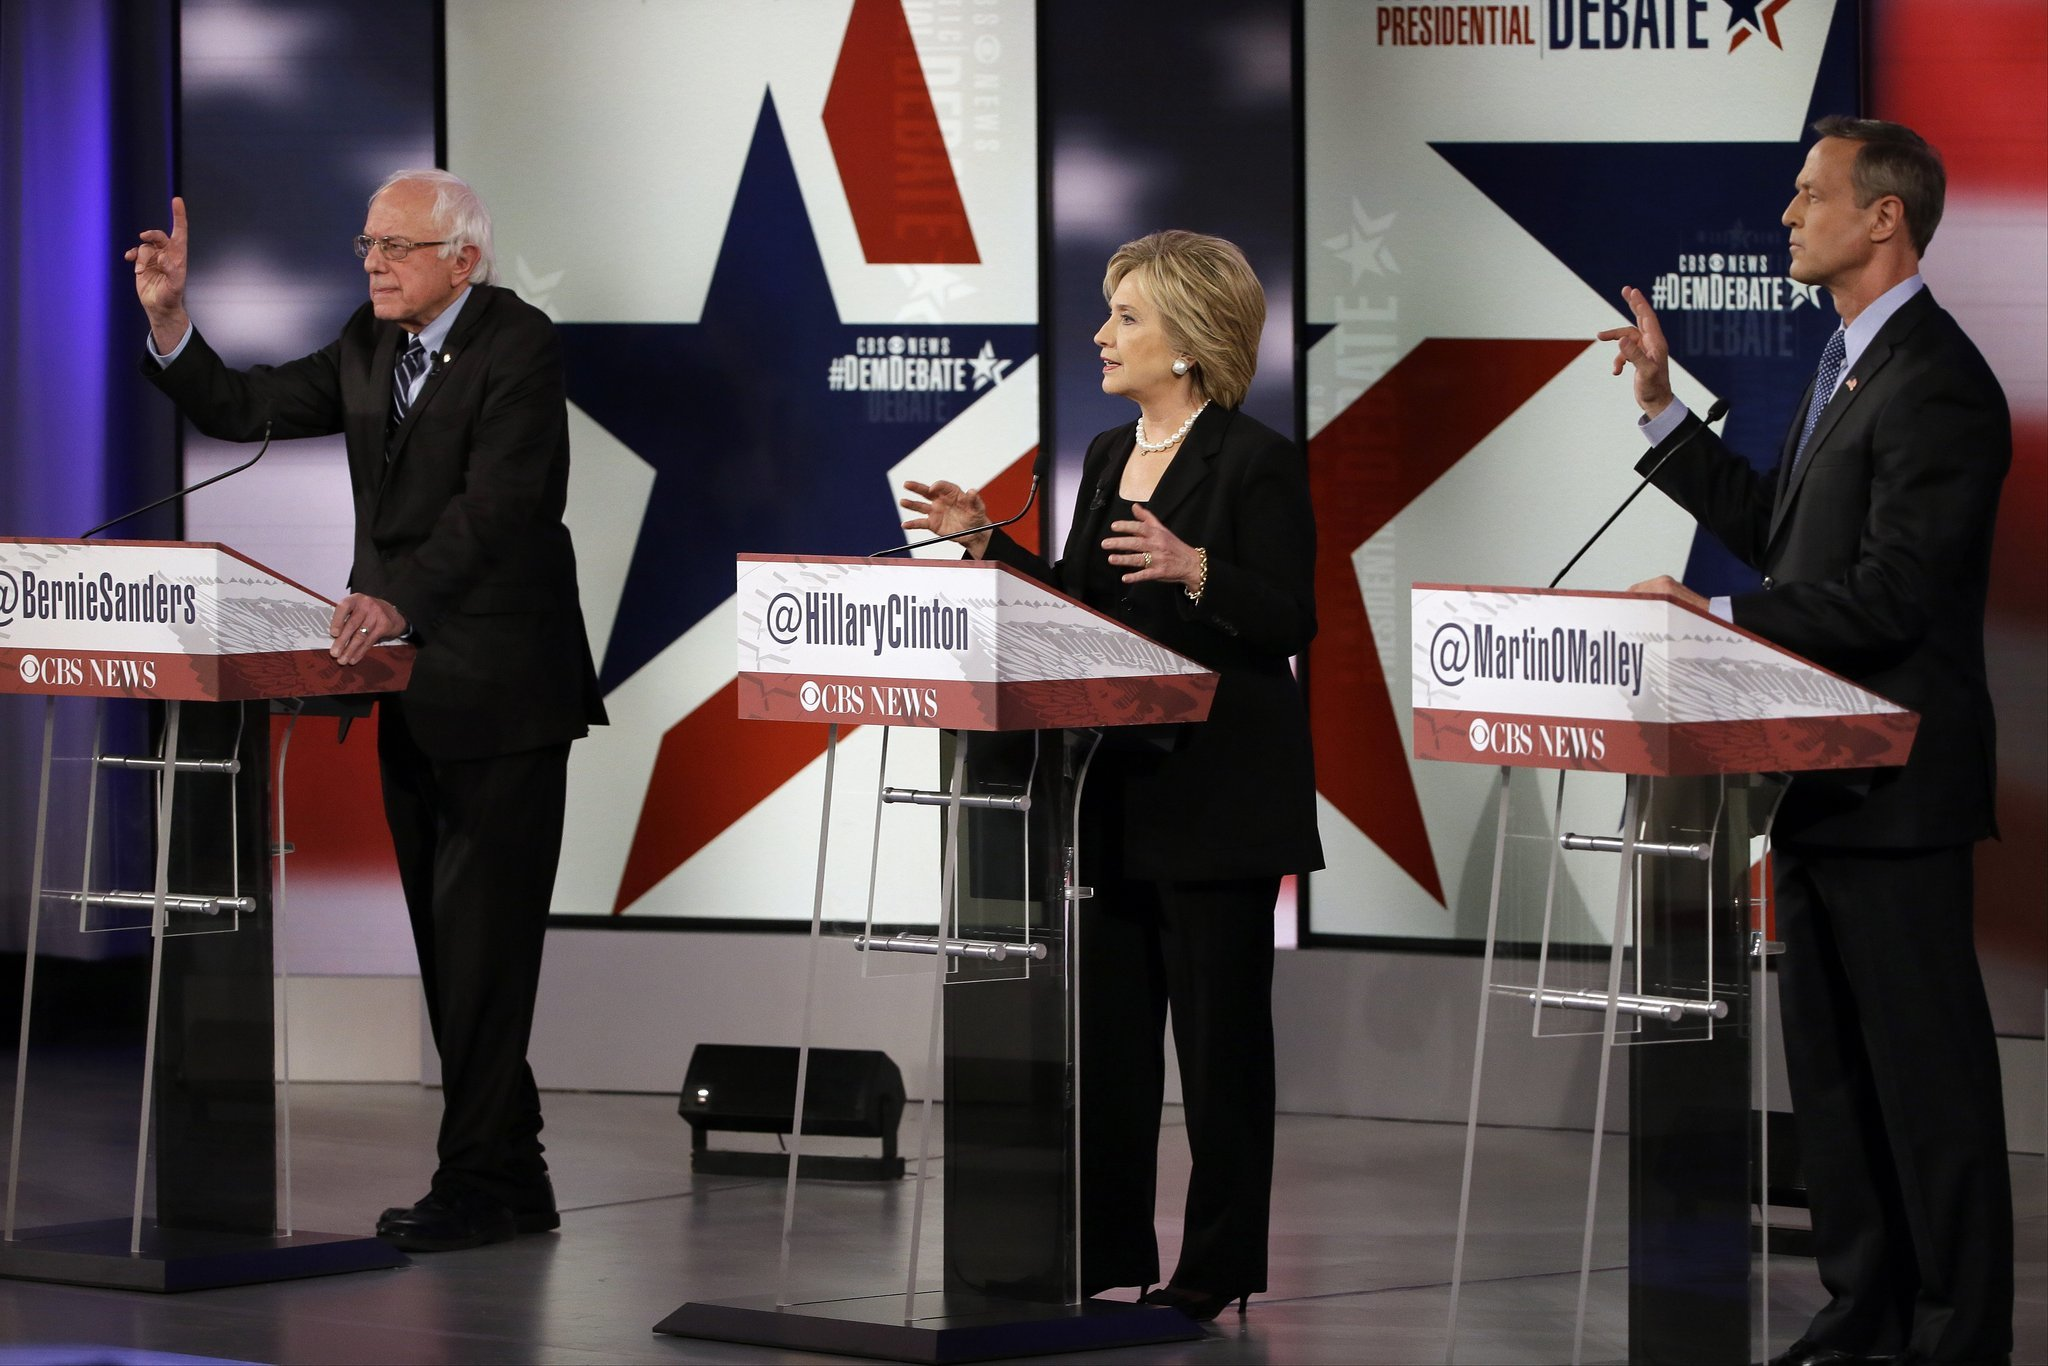 Bernie Sanders, Hillary Clinton and Martin O'Malley at a Democratic presidential debate in November. (Charlie Neibergall / Associated Press)